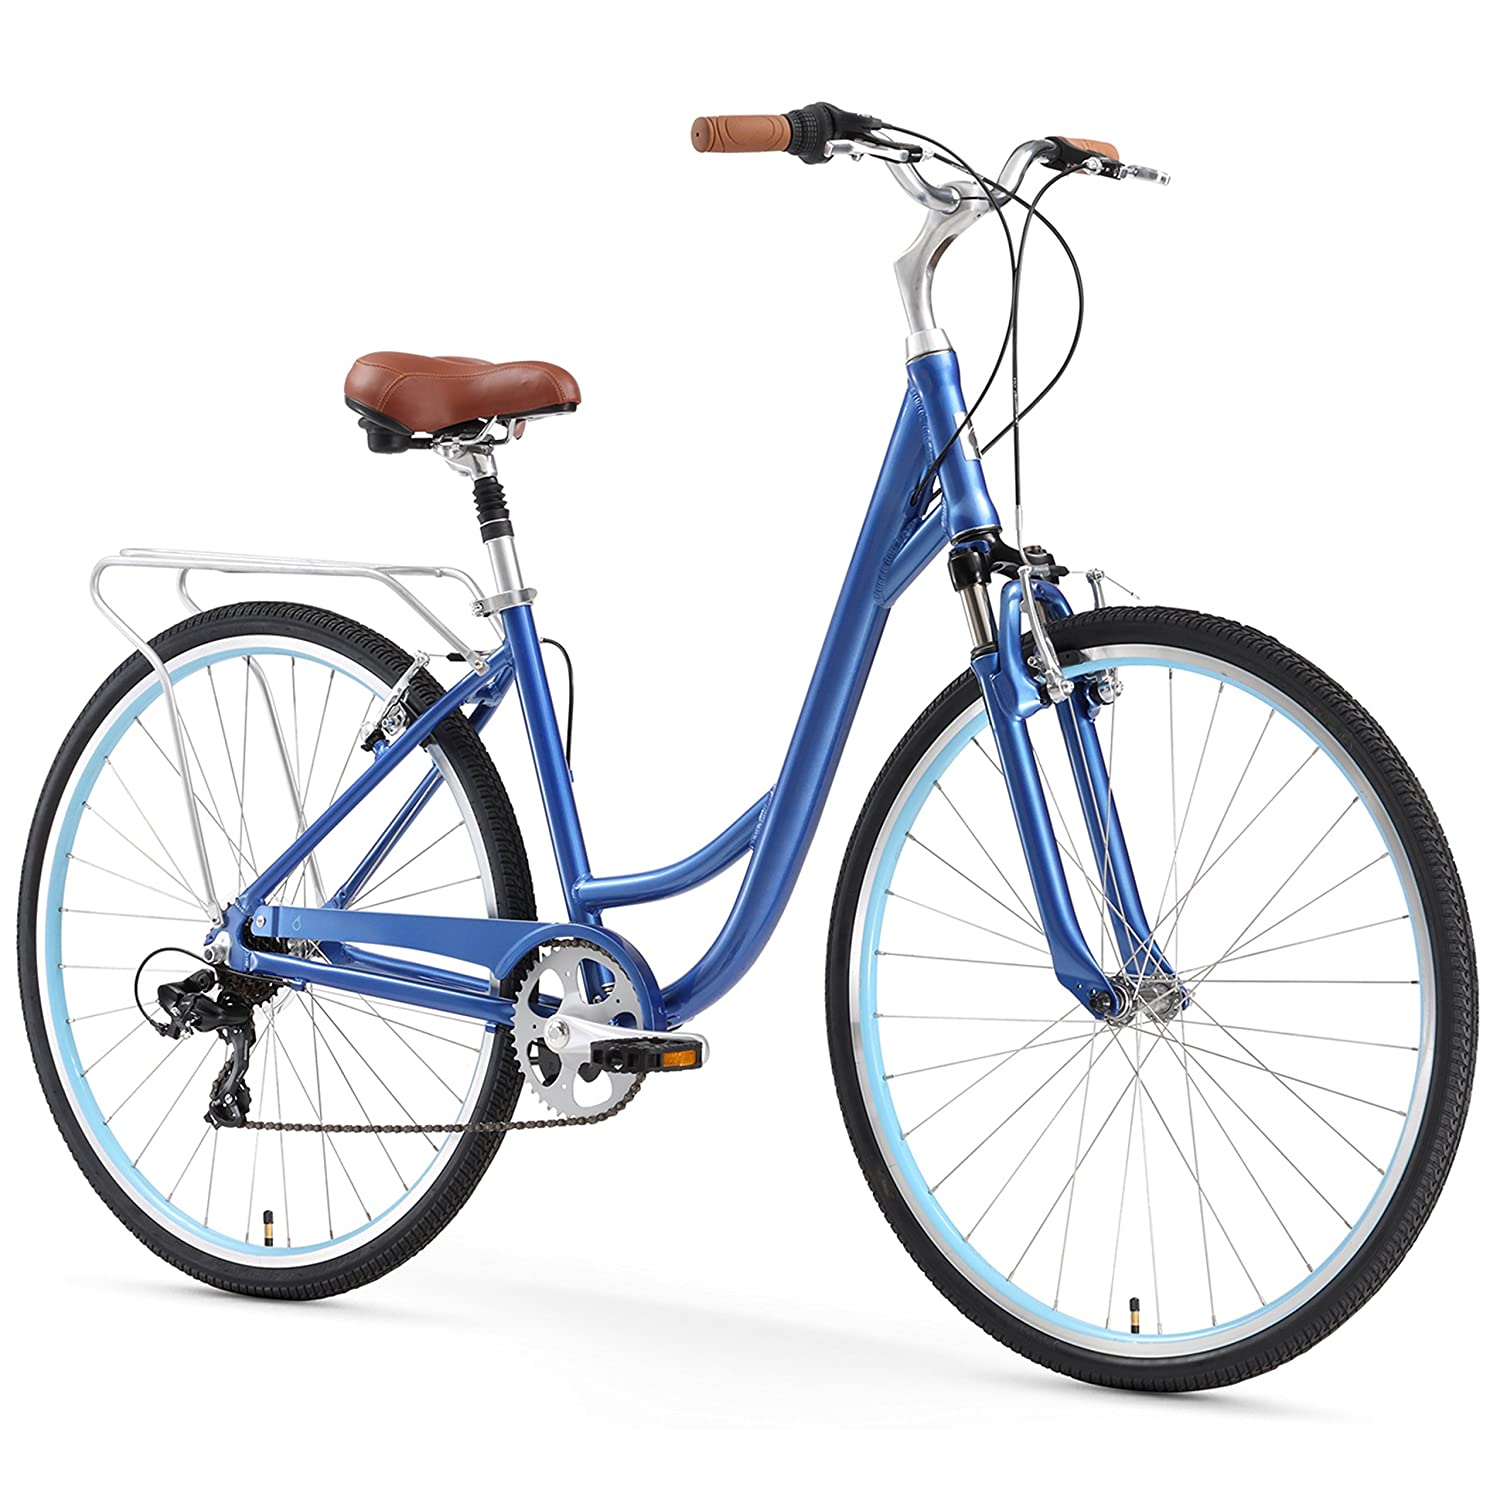 sixthreezero Body Ease Women's 7-Speed Comfort Bike, Navy Blue